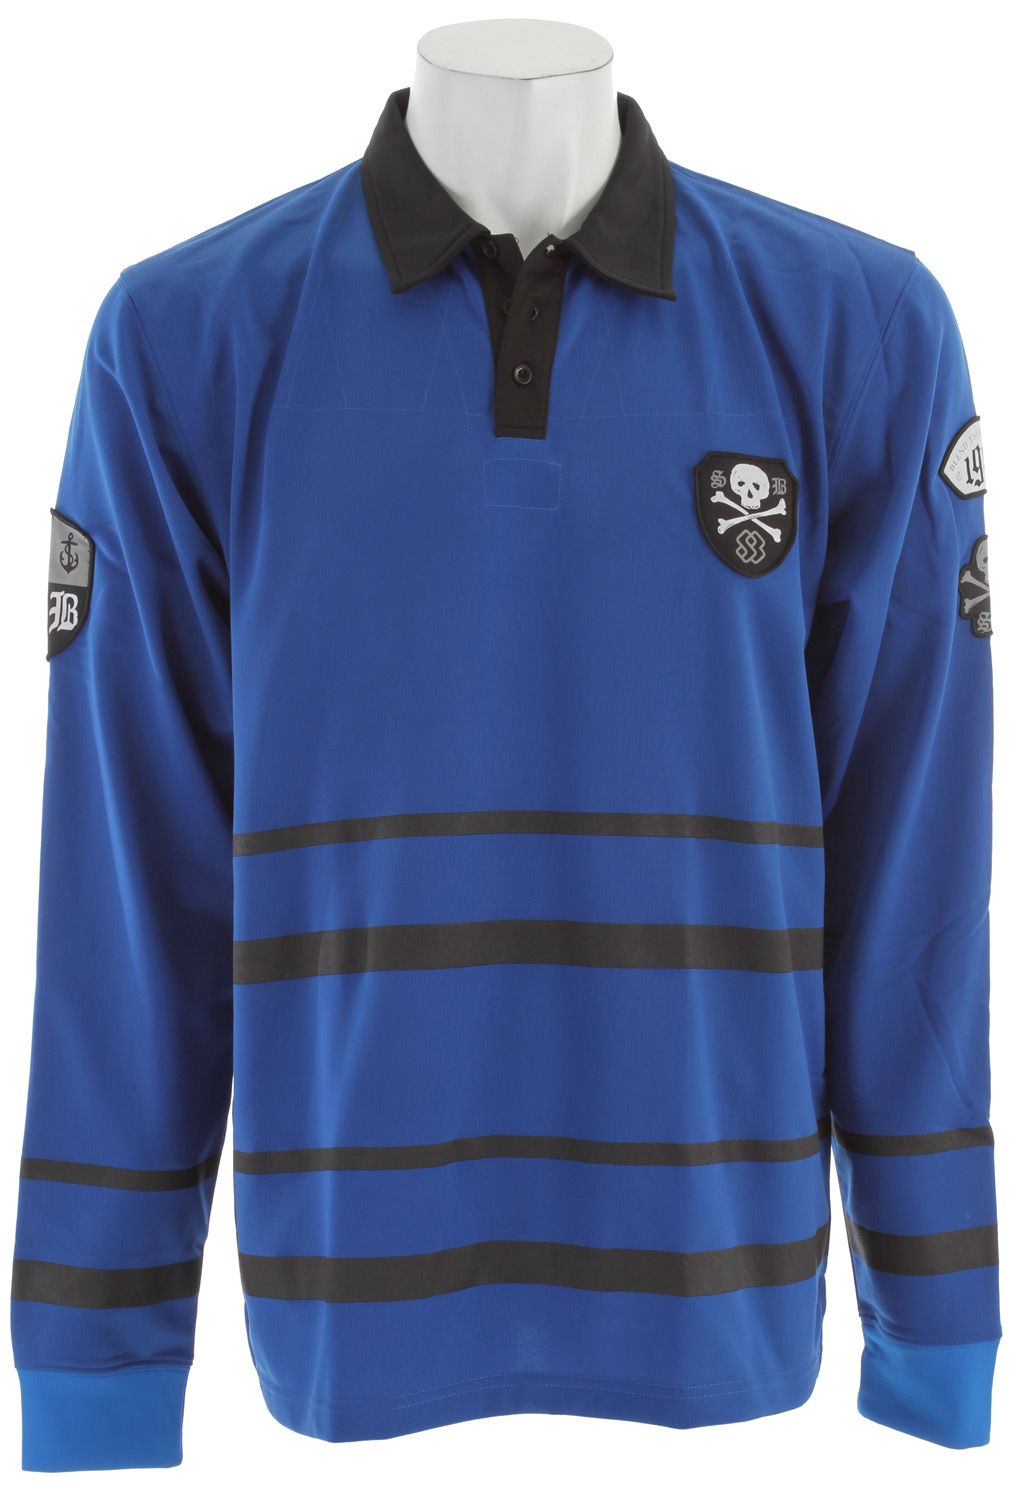 Key Features of the Special Blend Rugby Shirt Baselayer Top: 100% polyester Patched graphic on sleeves and body Wicking properties Cover stitched seams Anti-bacteria added on fabric to prevent odor - $15.96